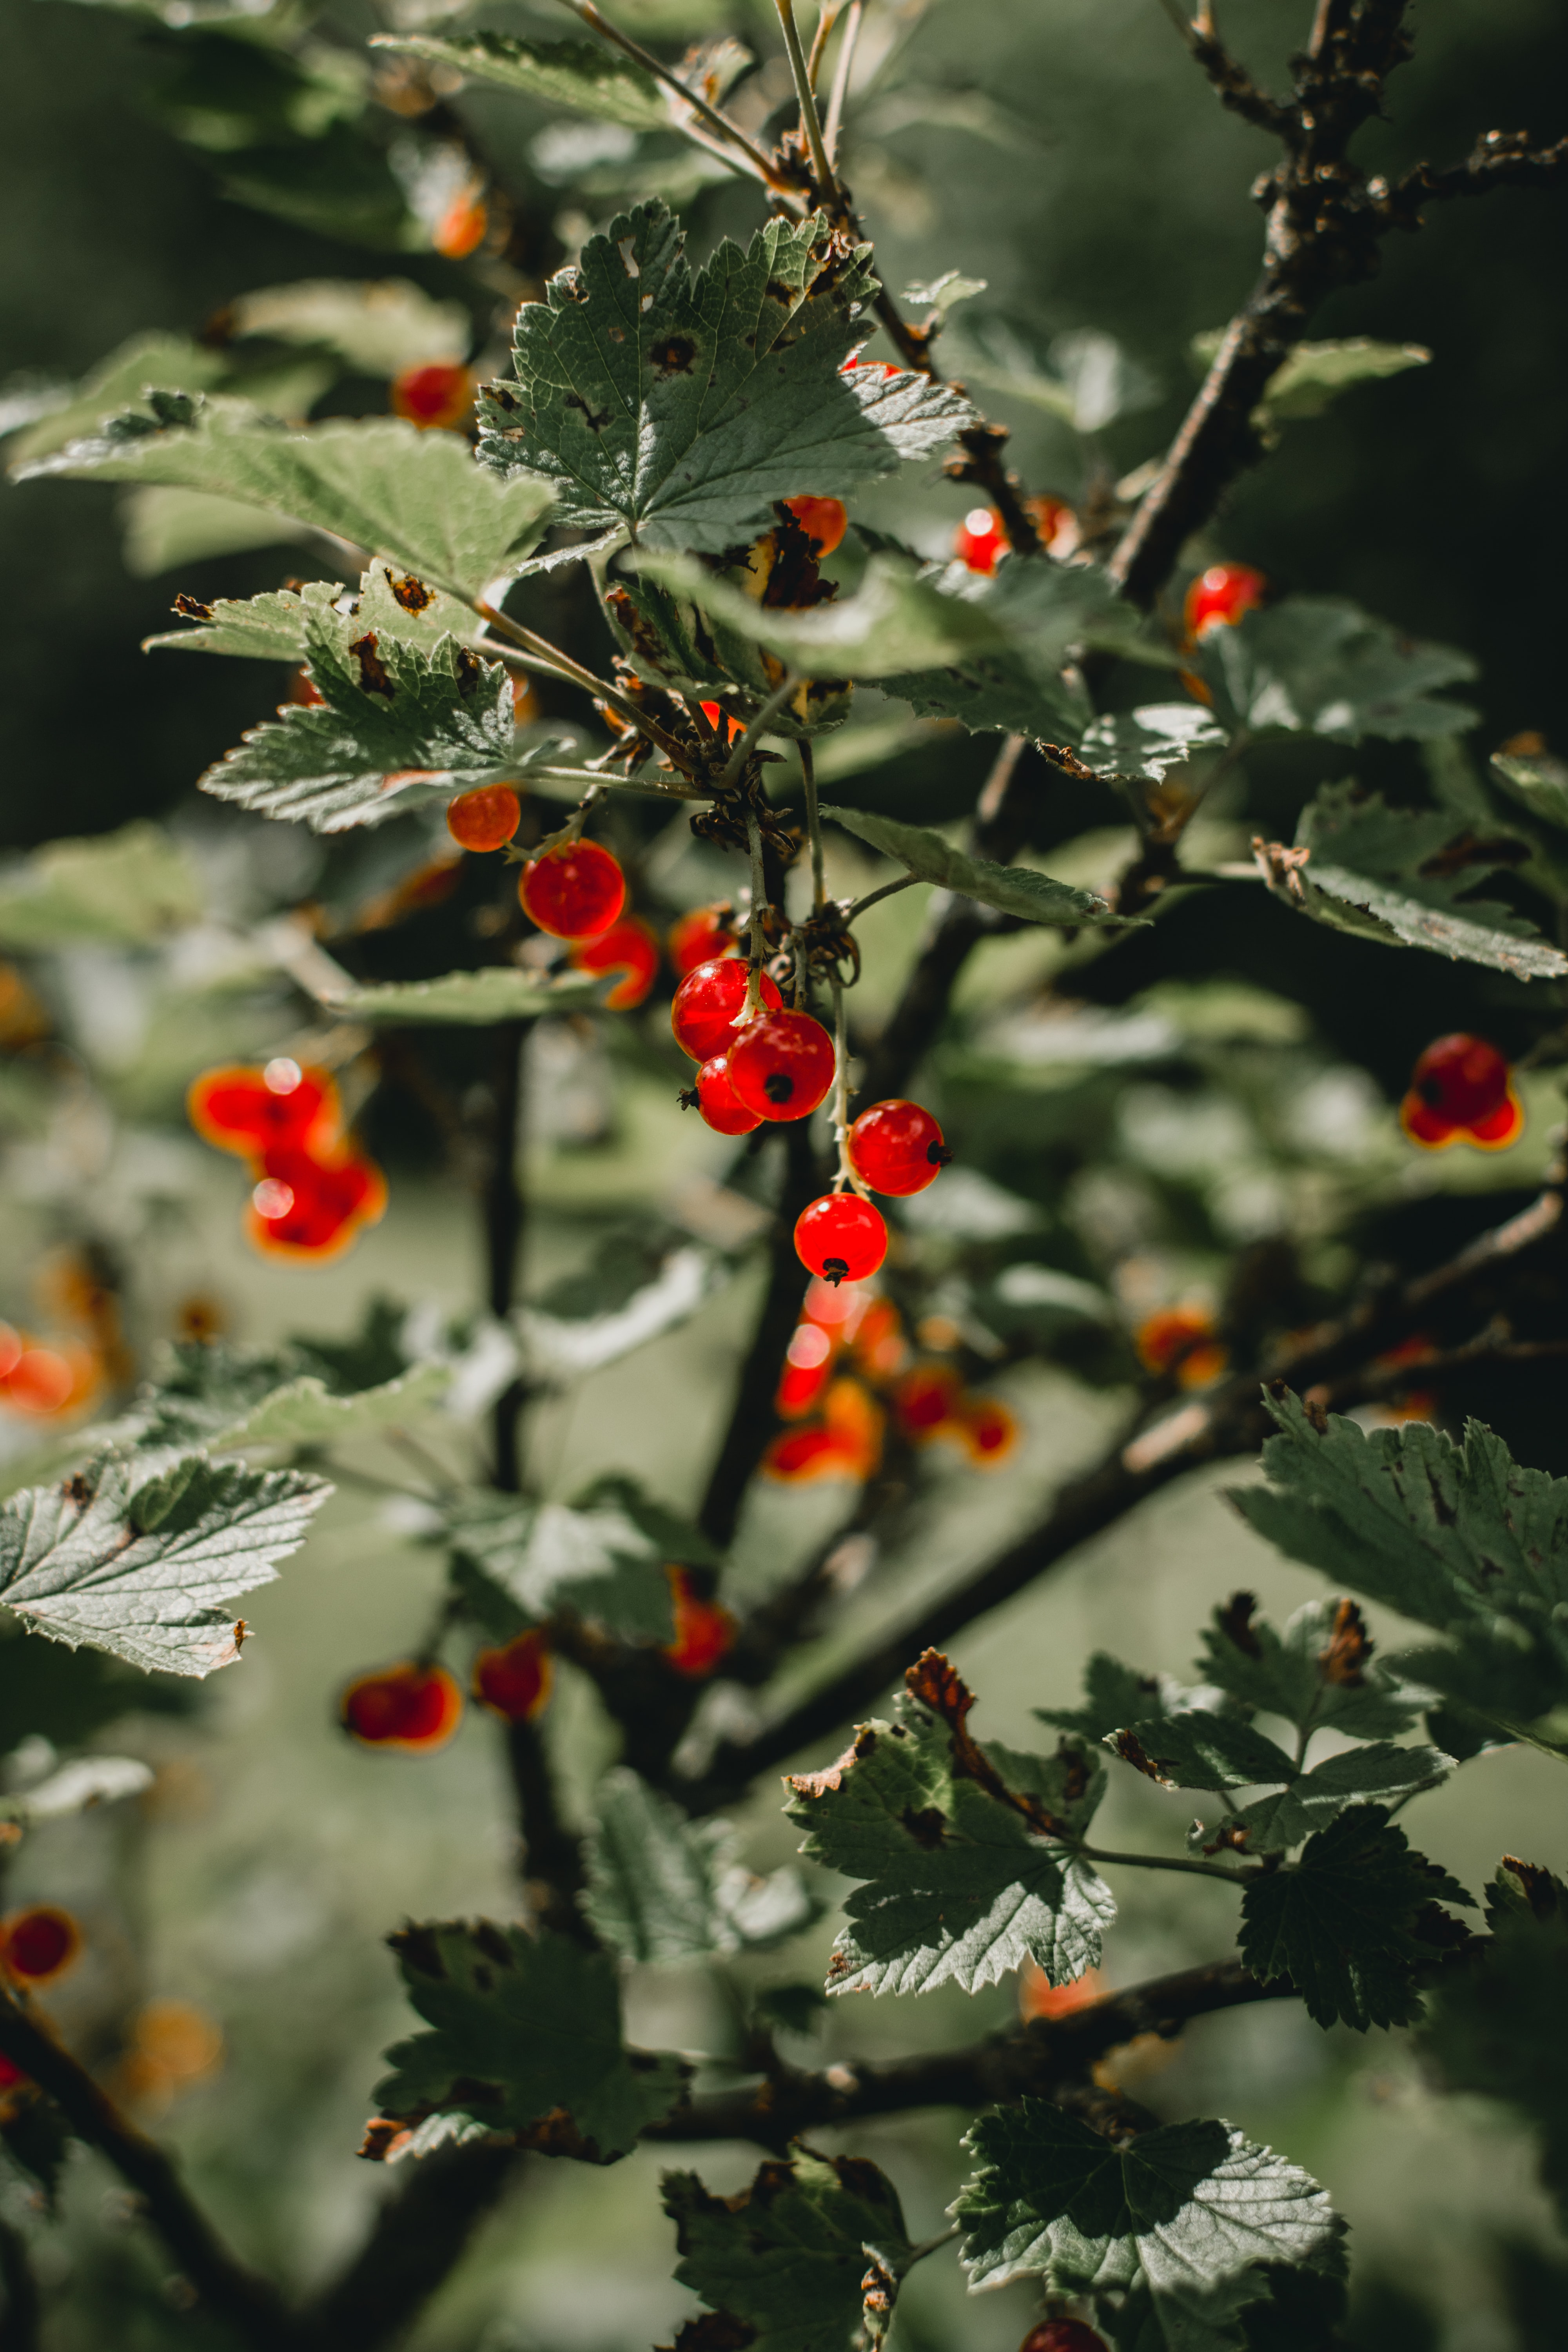 redcurrants growing on a bush